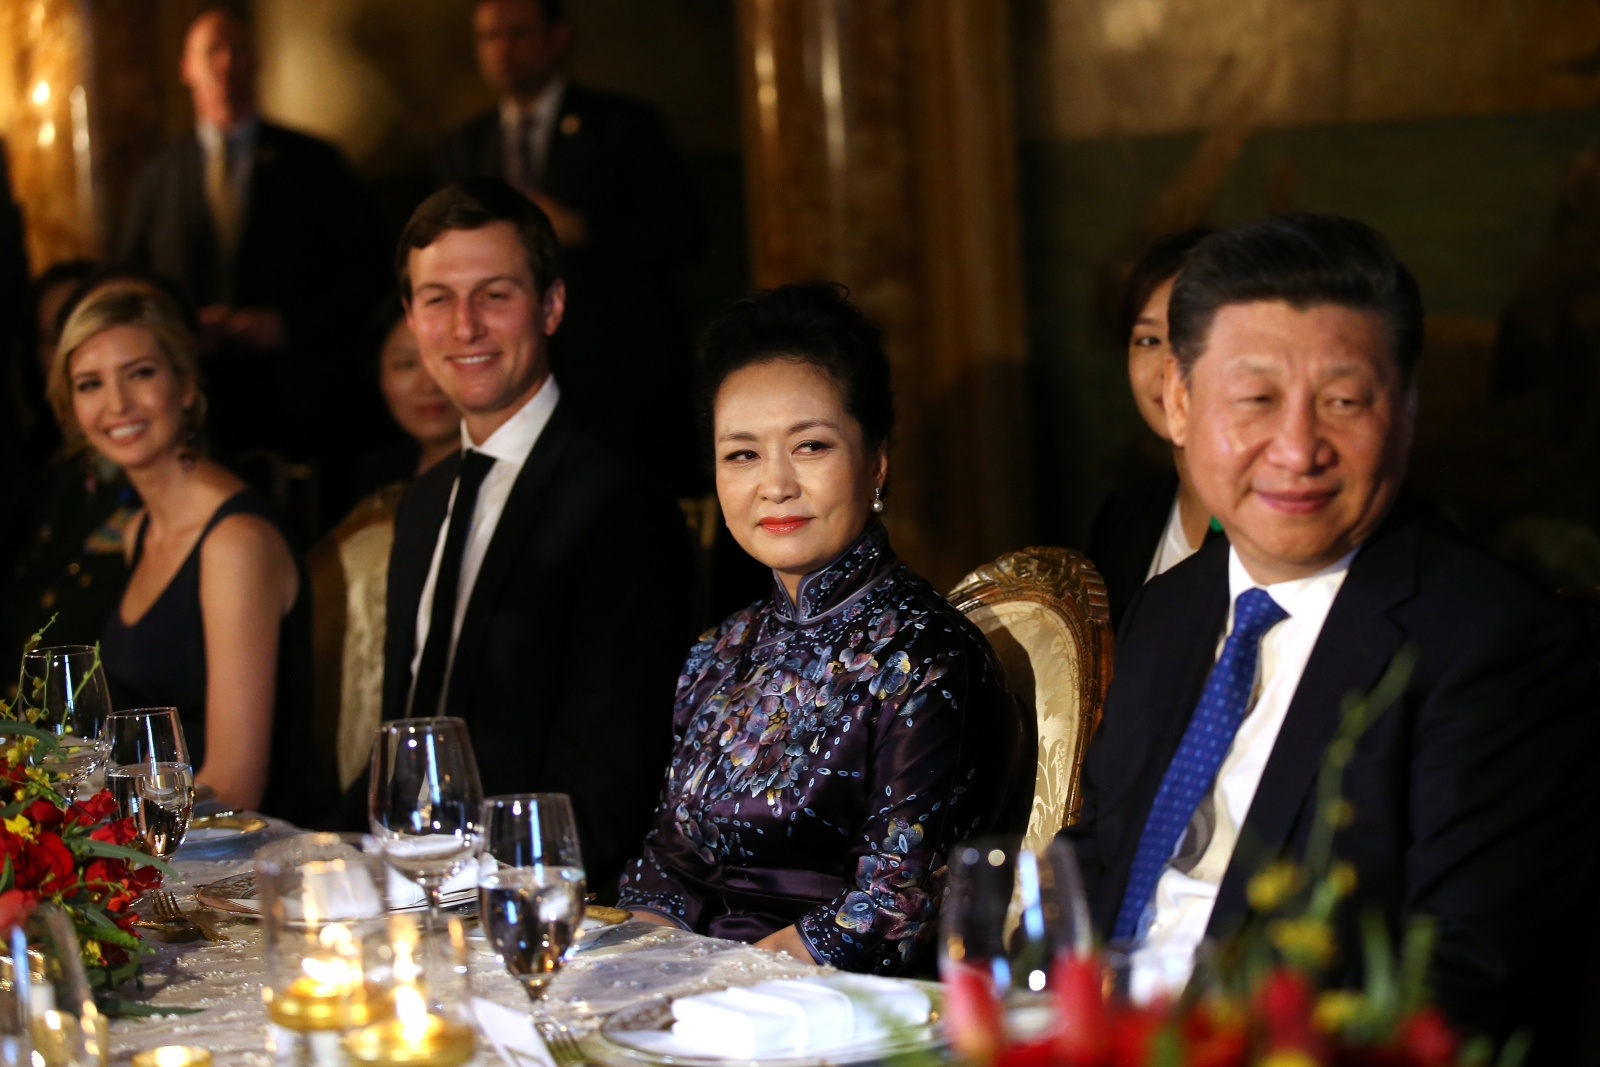 Xi Jinping, Peng Liyuan, Jared and Ivanka